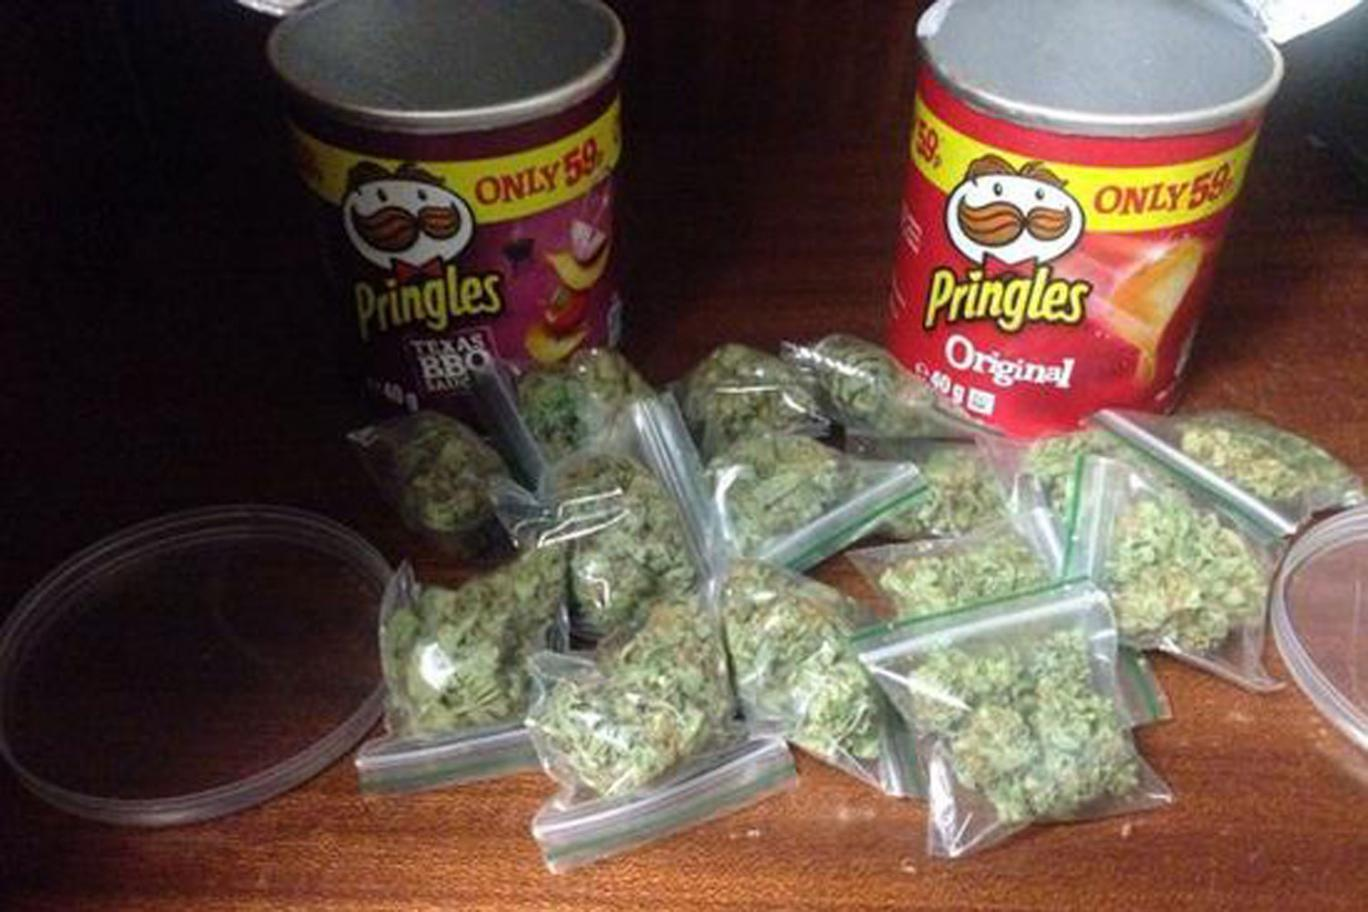 15 Bags Of Weed Found Stuffed Inside Pringles Cans On A Playground